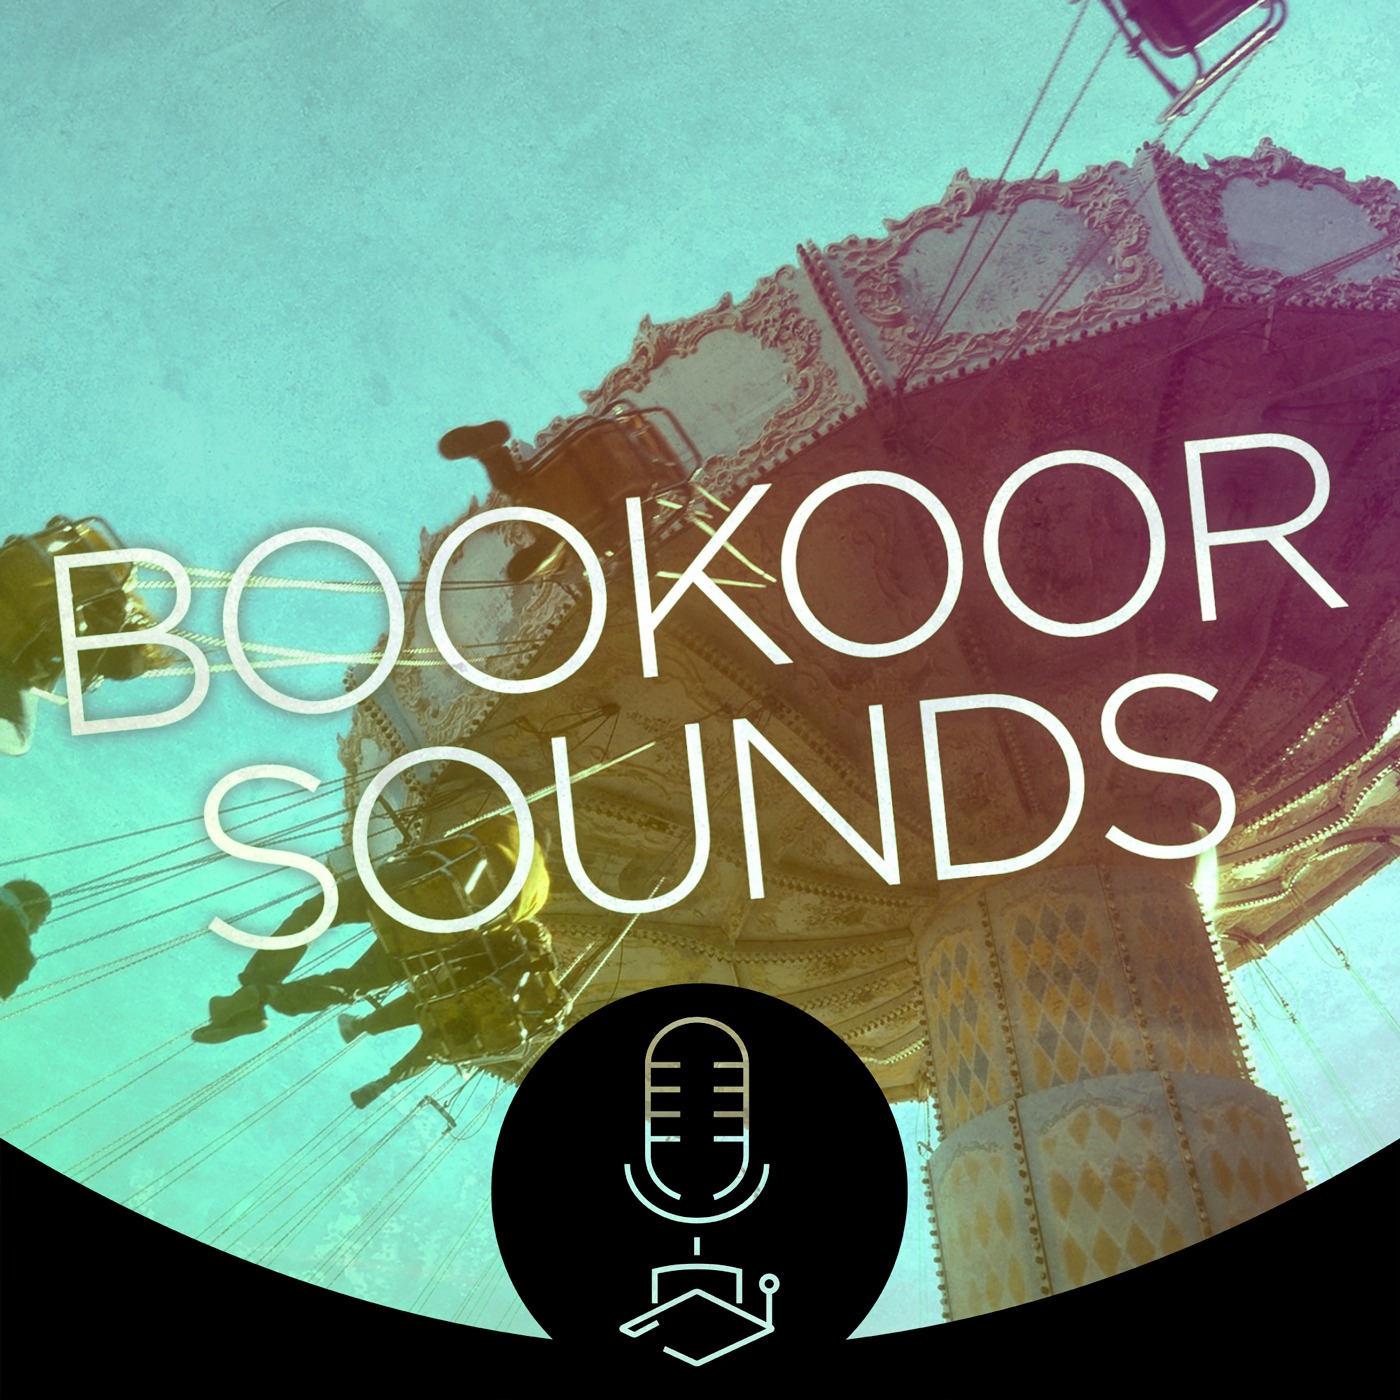 Bookoor Sounds